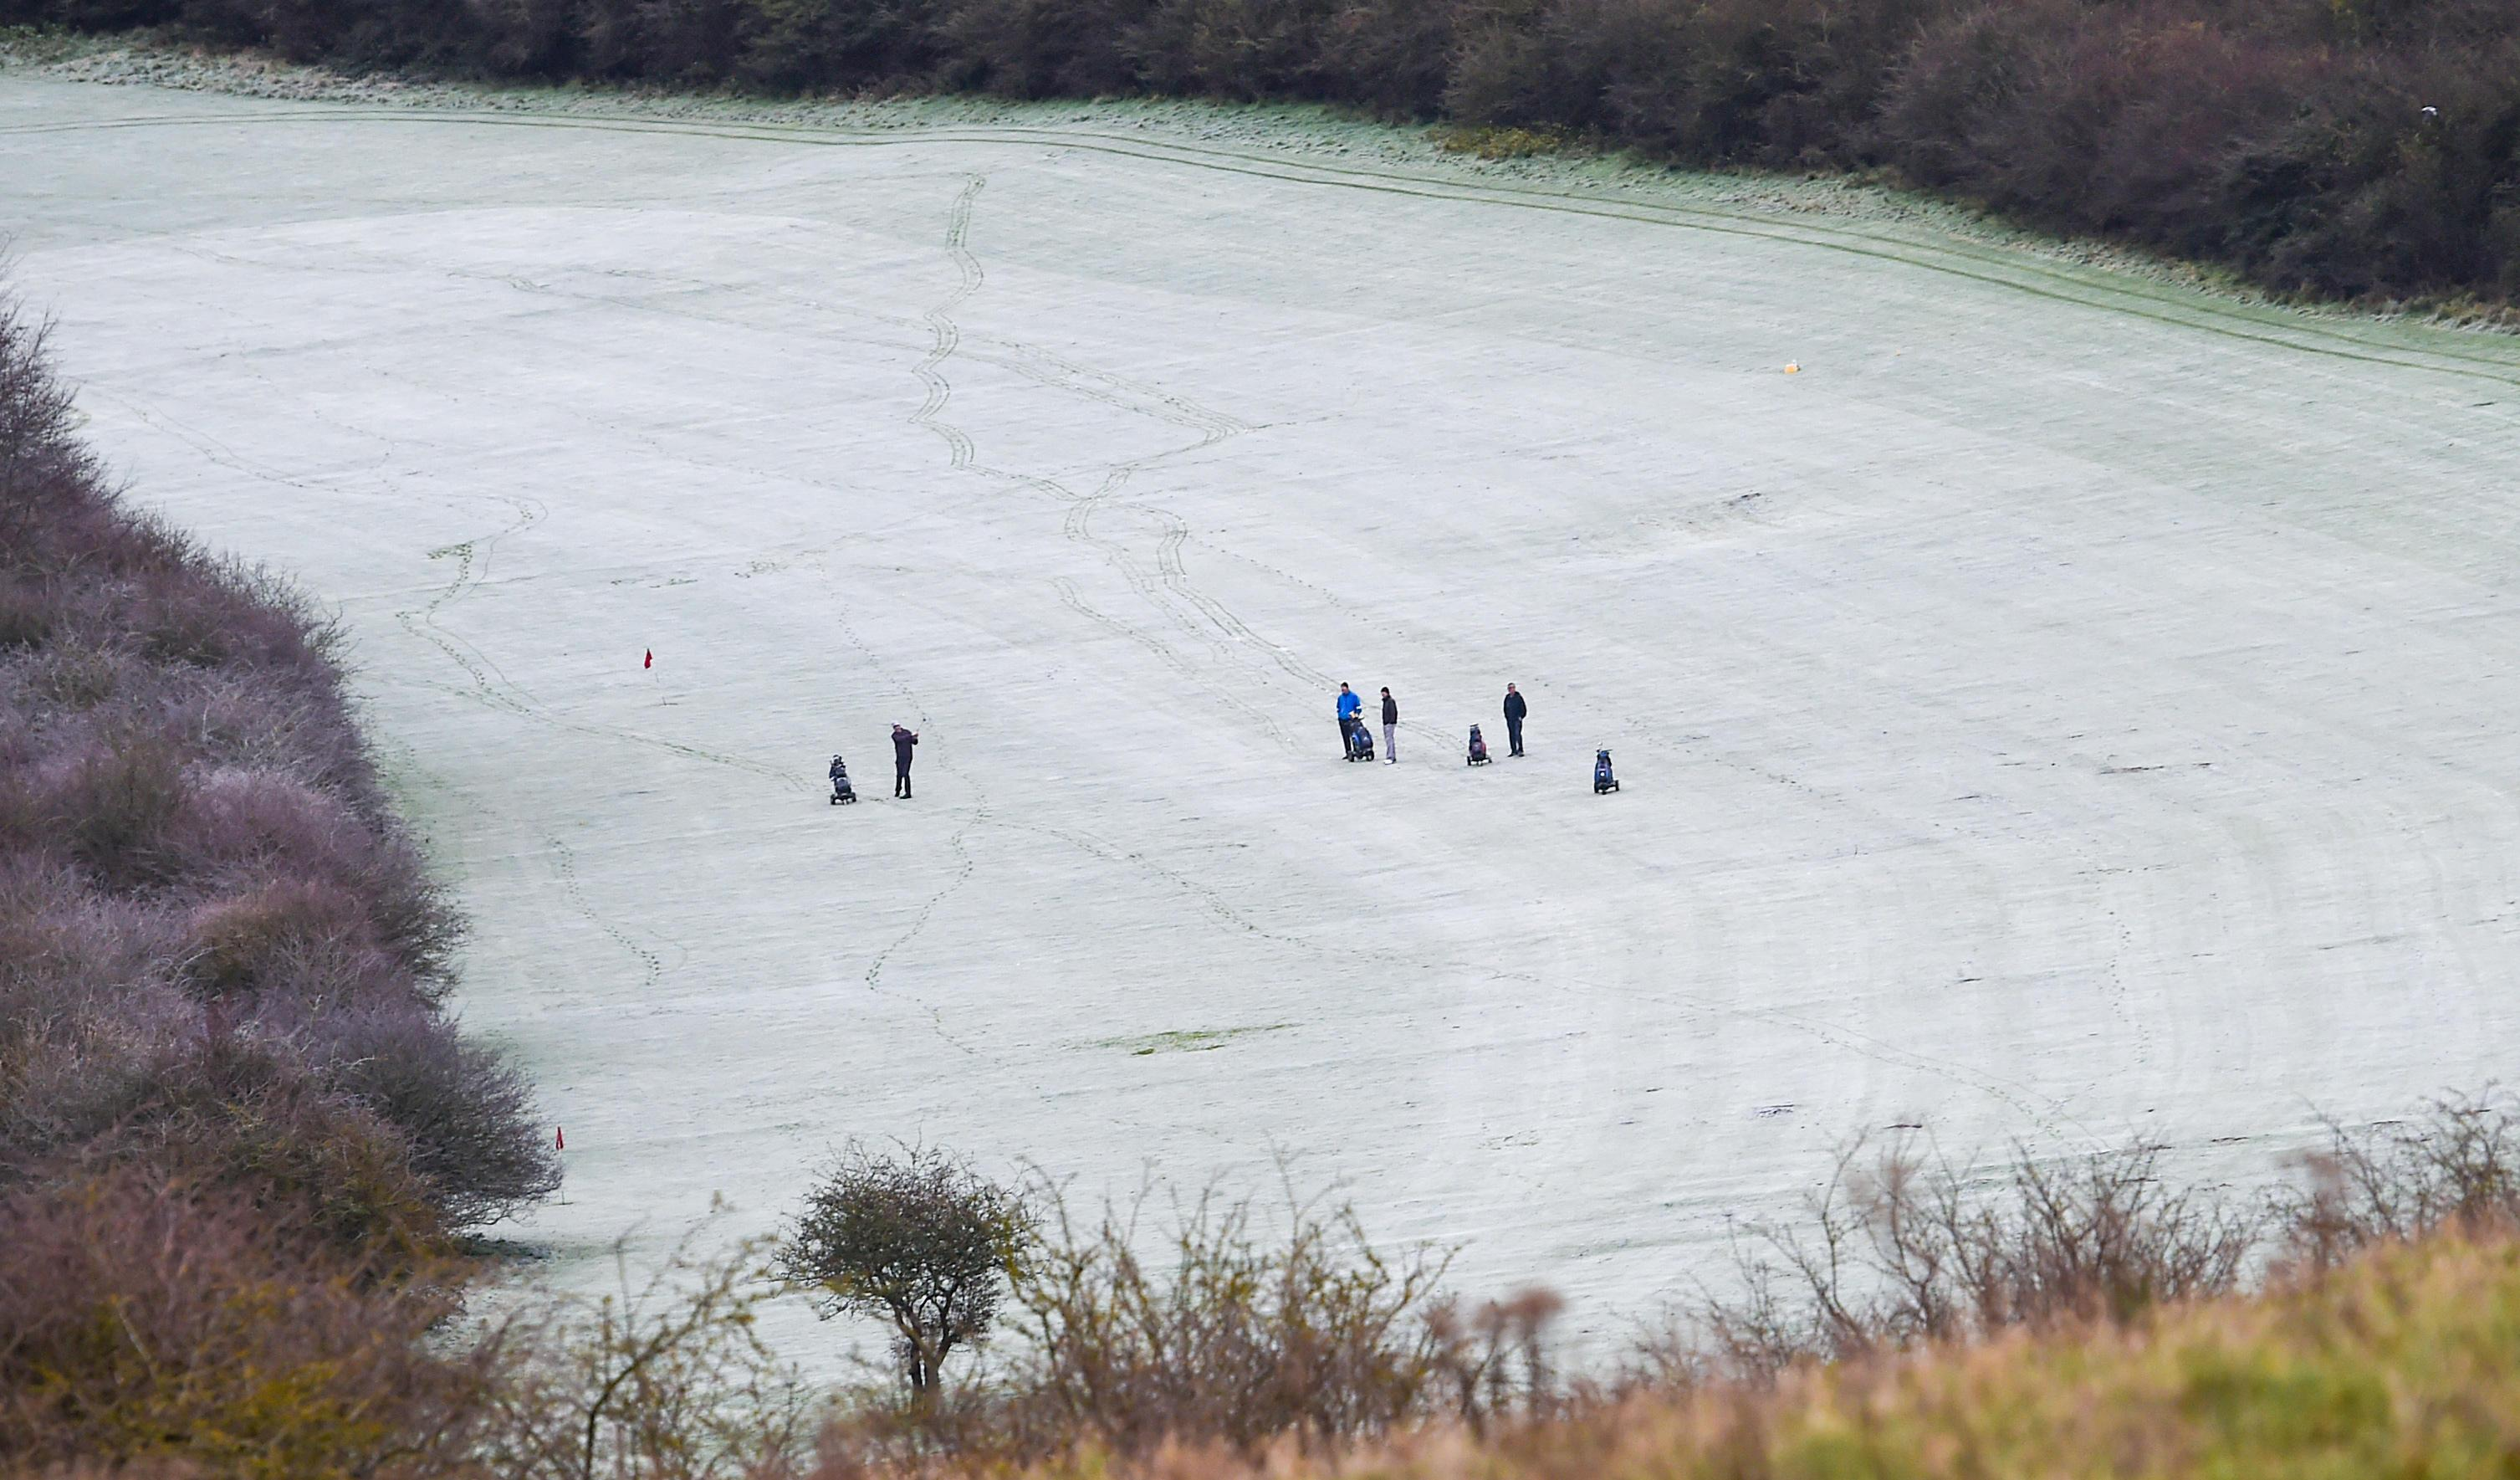 Golfers braved the cold in Brighton at the Waterfall golf course this morning